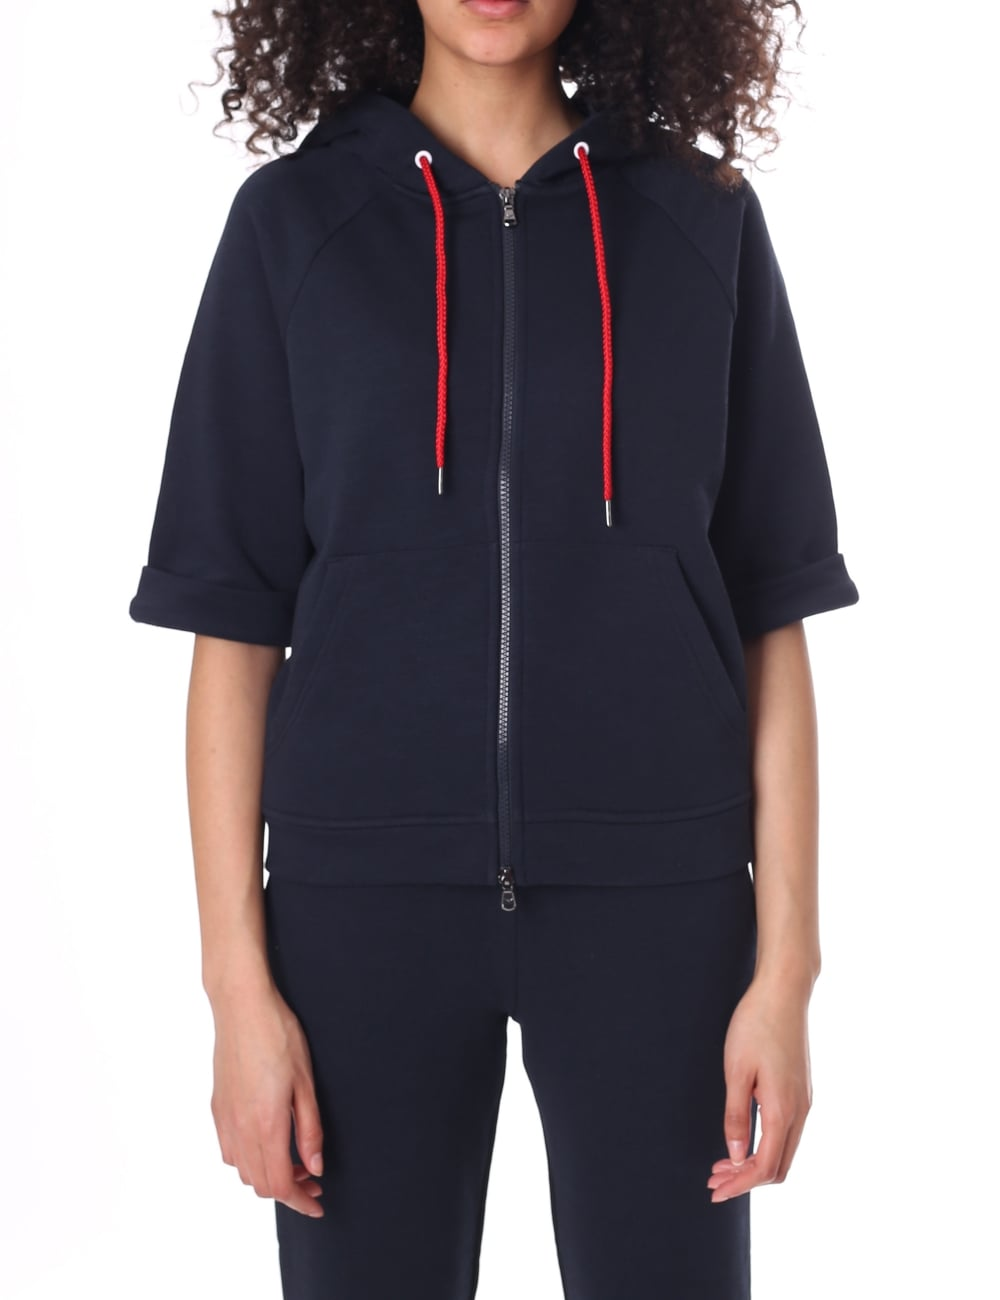 detailed look ace10 56472 emporio-armani-womens-zip-through-hooded-sweat-top-p95889-630622 image.jpg